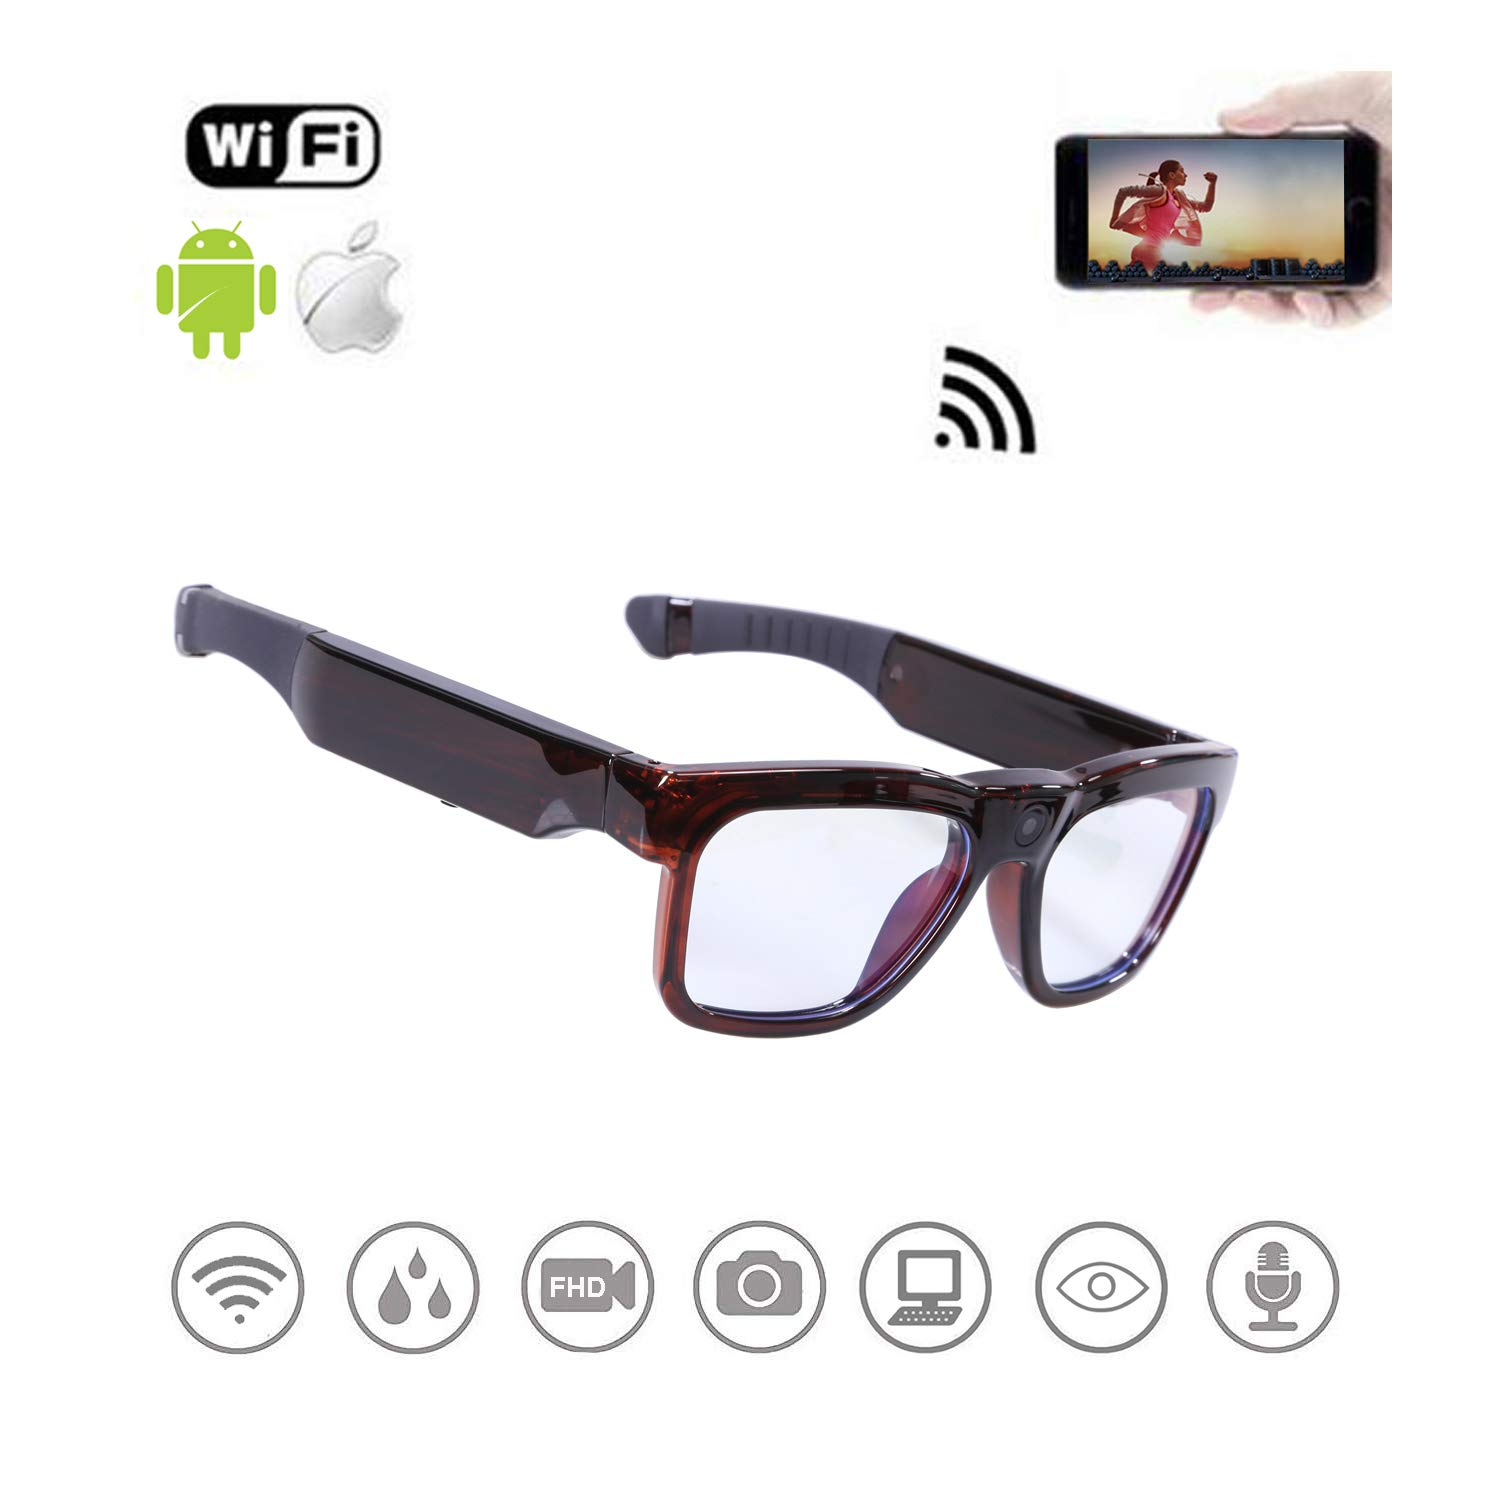 WiFi Live Streaming Video Sunglasses, Streaming Videos & Photos from Glasses to Mobile Phone by App with Ultra Full HD Camera, Built-in 64GB Memory and Blue Light Blocking Glasses for Gaming, Reading by OhO sunshine